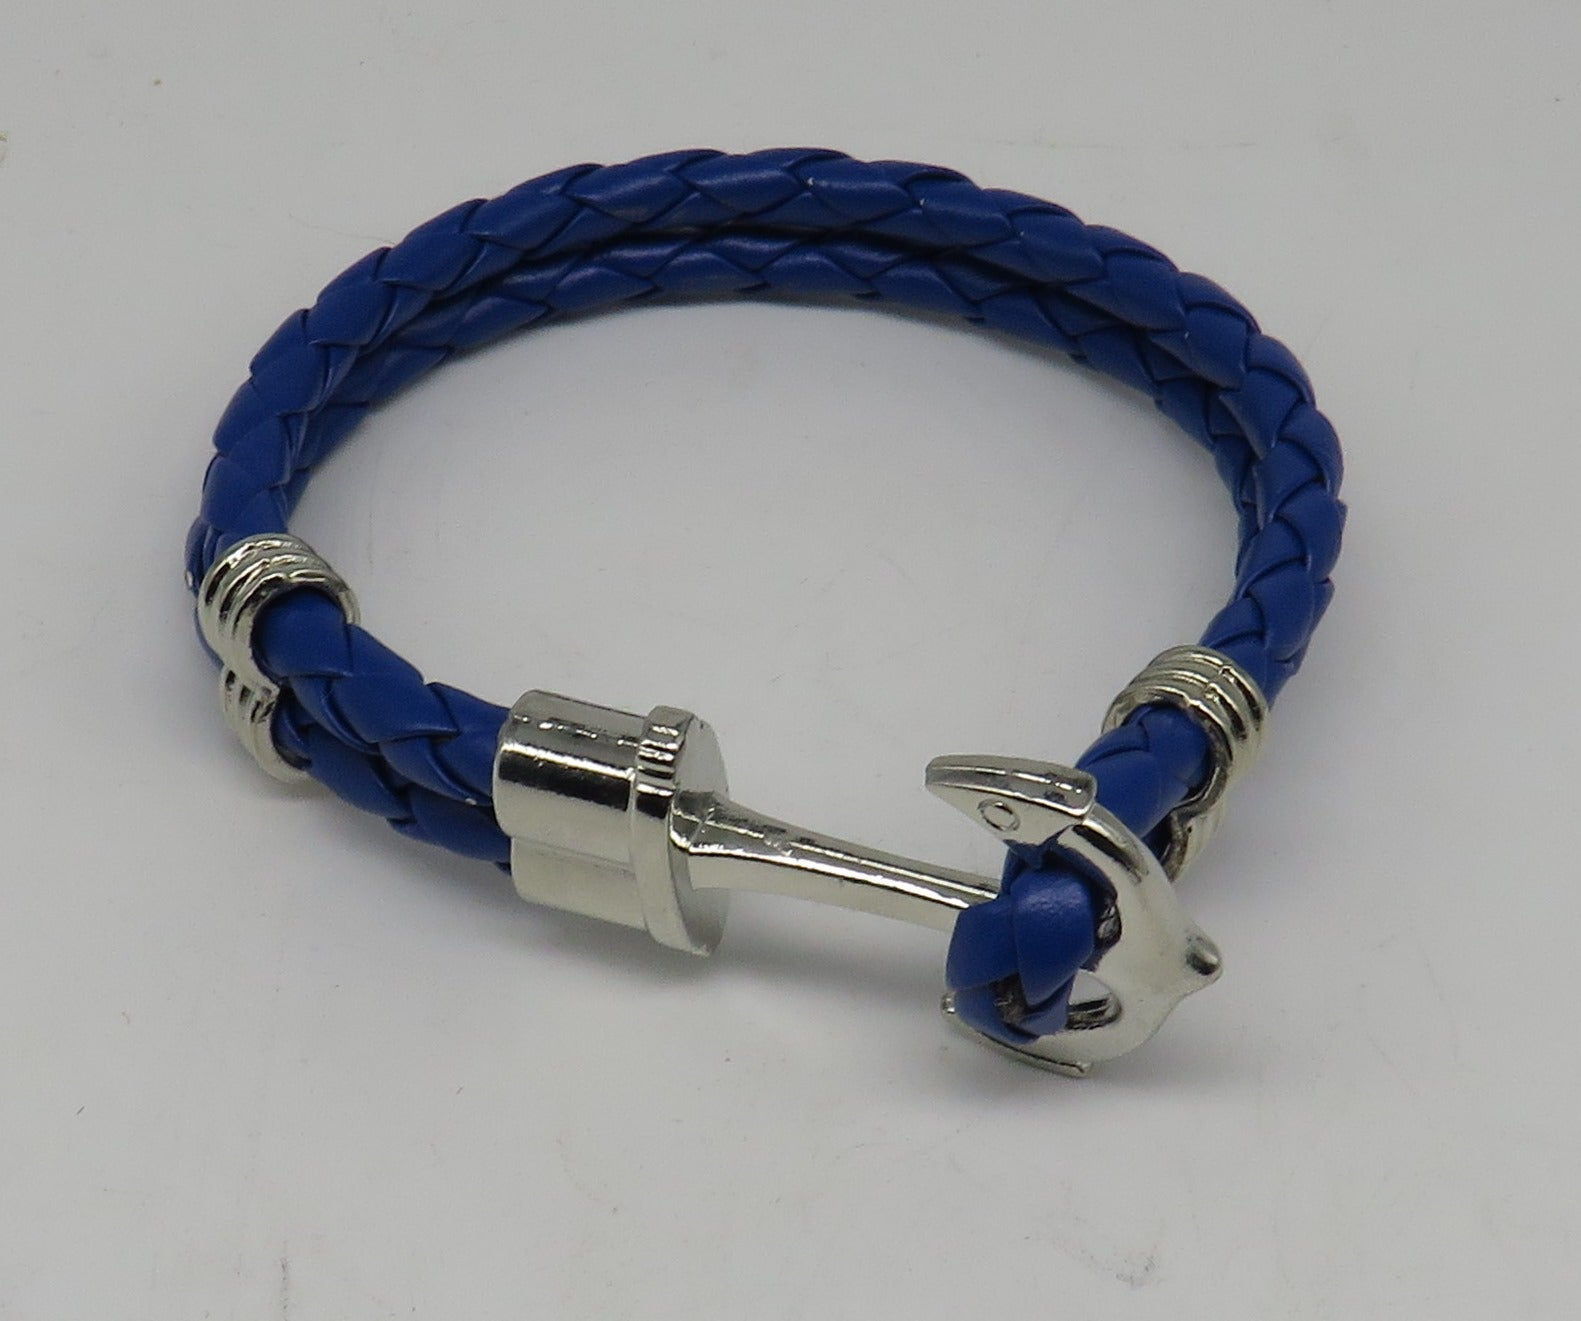 Unisex Leather Handmade Braided Cuff Anchor Bangle Bracelet Wristband Blue-Silver